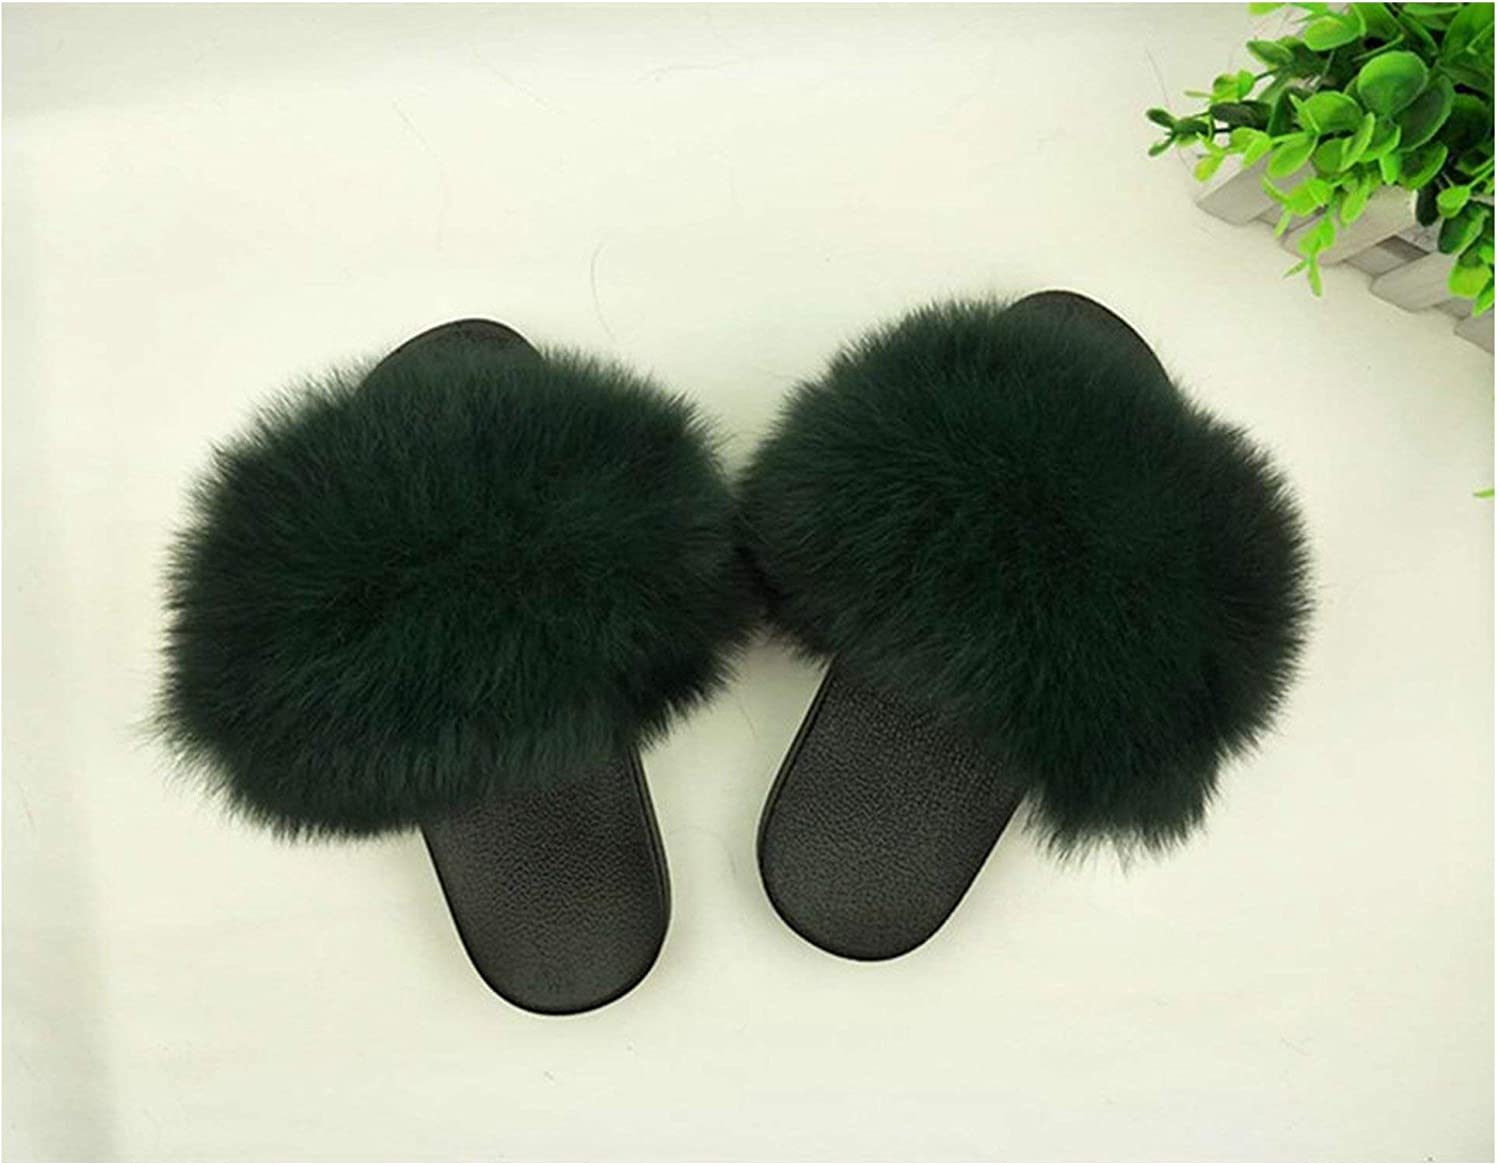 Houfeoans Fur Slippers Women Fox Home Fluffy Sliders with Feathers Furry Summer Flats Sweet shoes